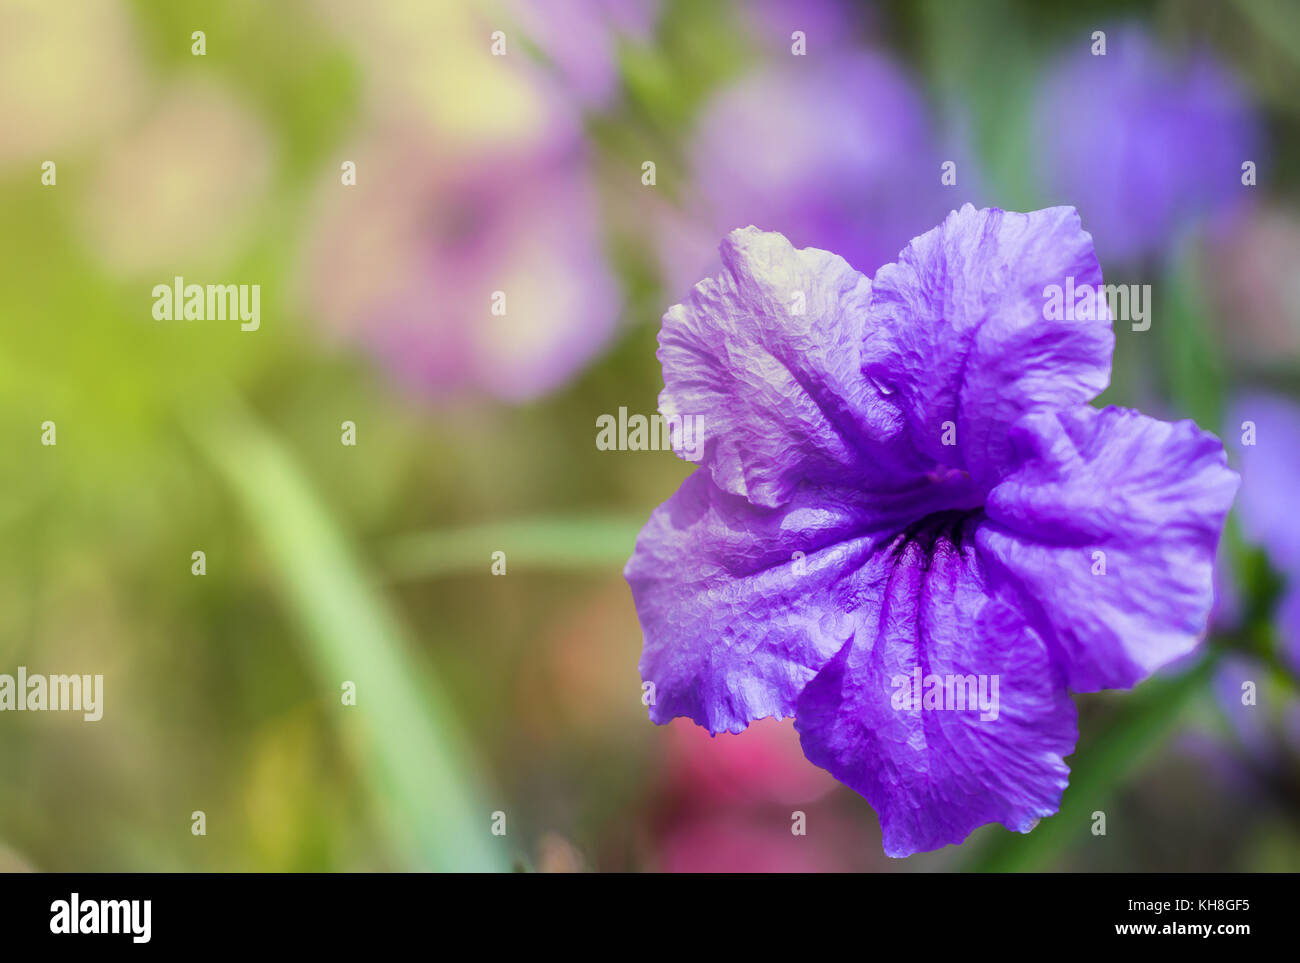 purple flower close up with warm tone and blur background - Stock Image